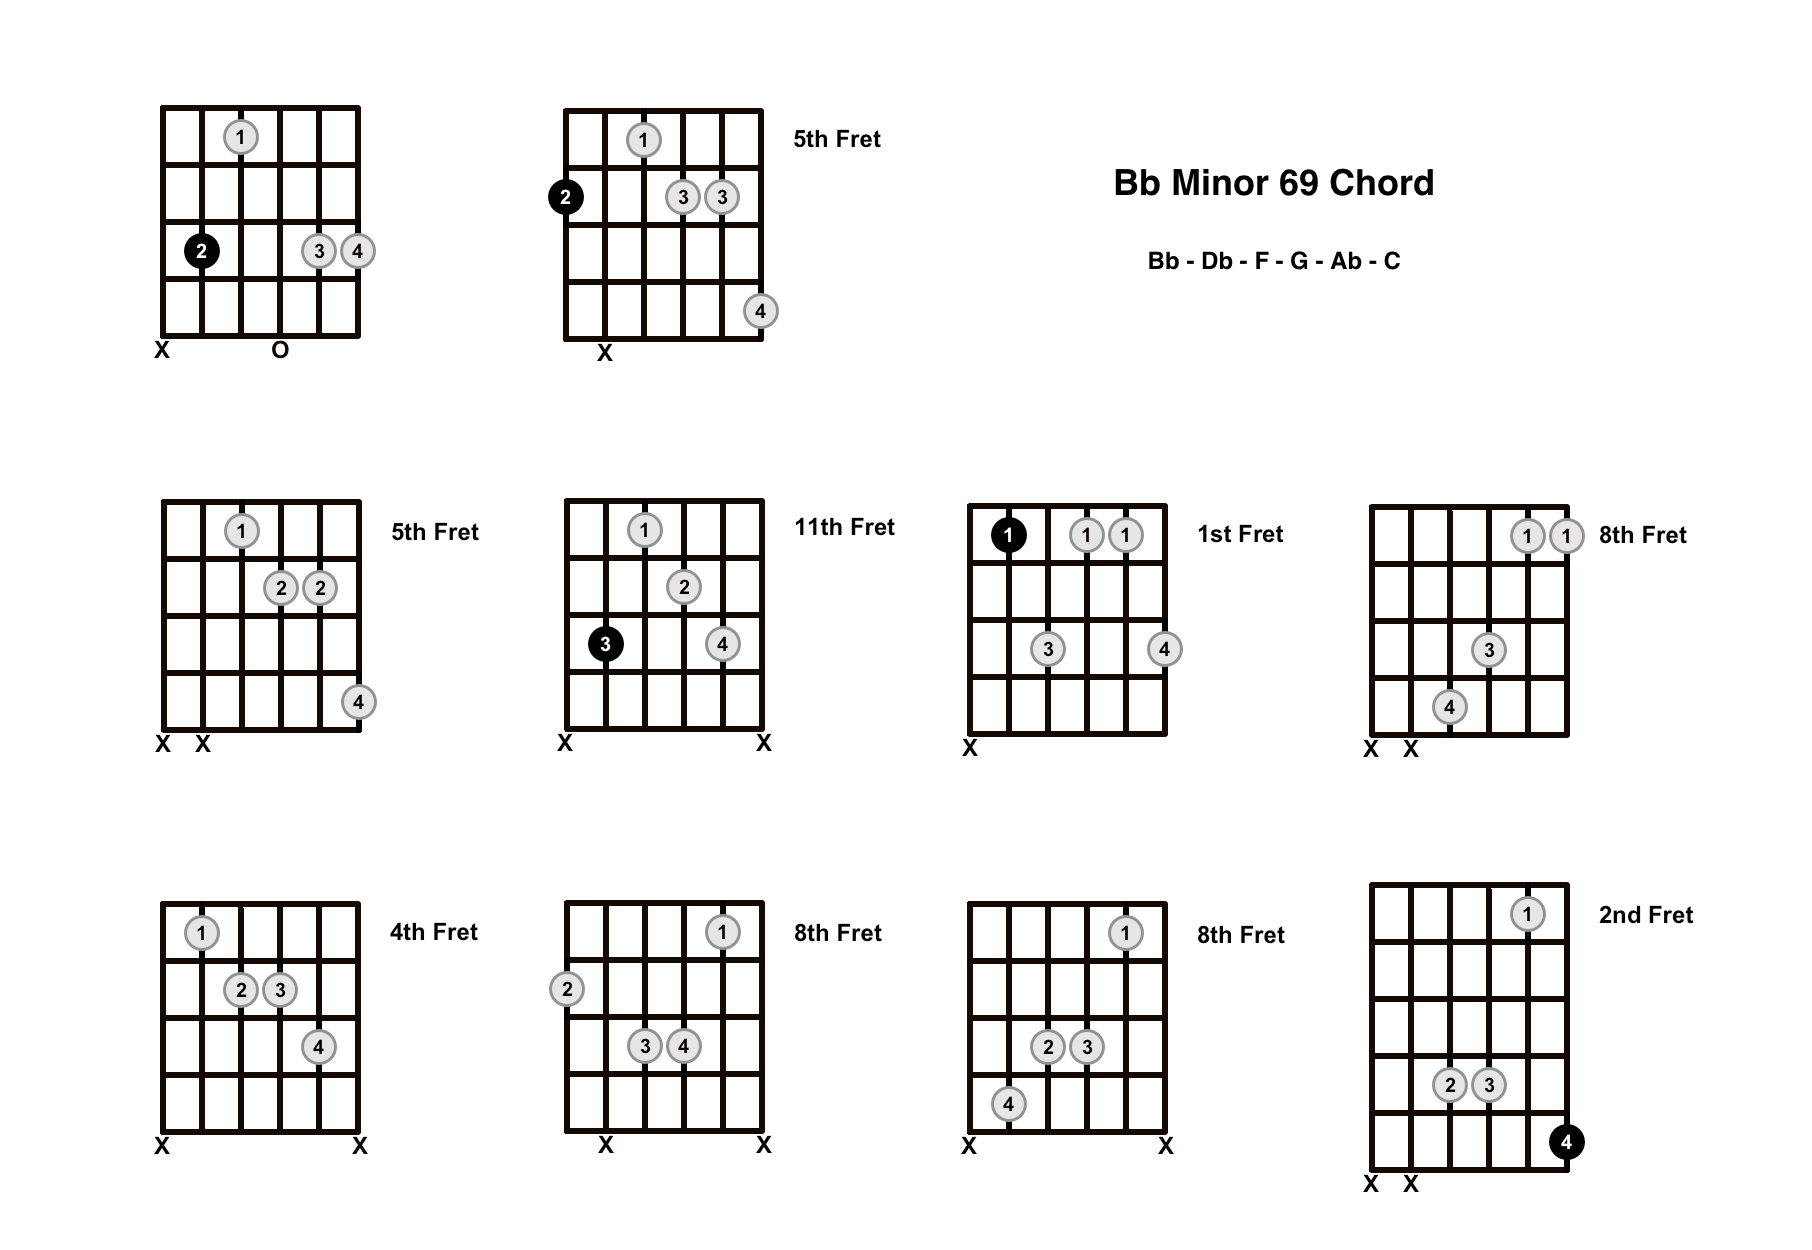 Bbm69 Chord On The Guitar (B Flat Minor 69) – Diagrams, Finger Positions and Theory